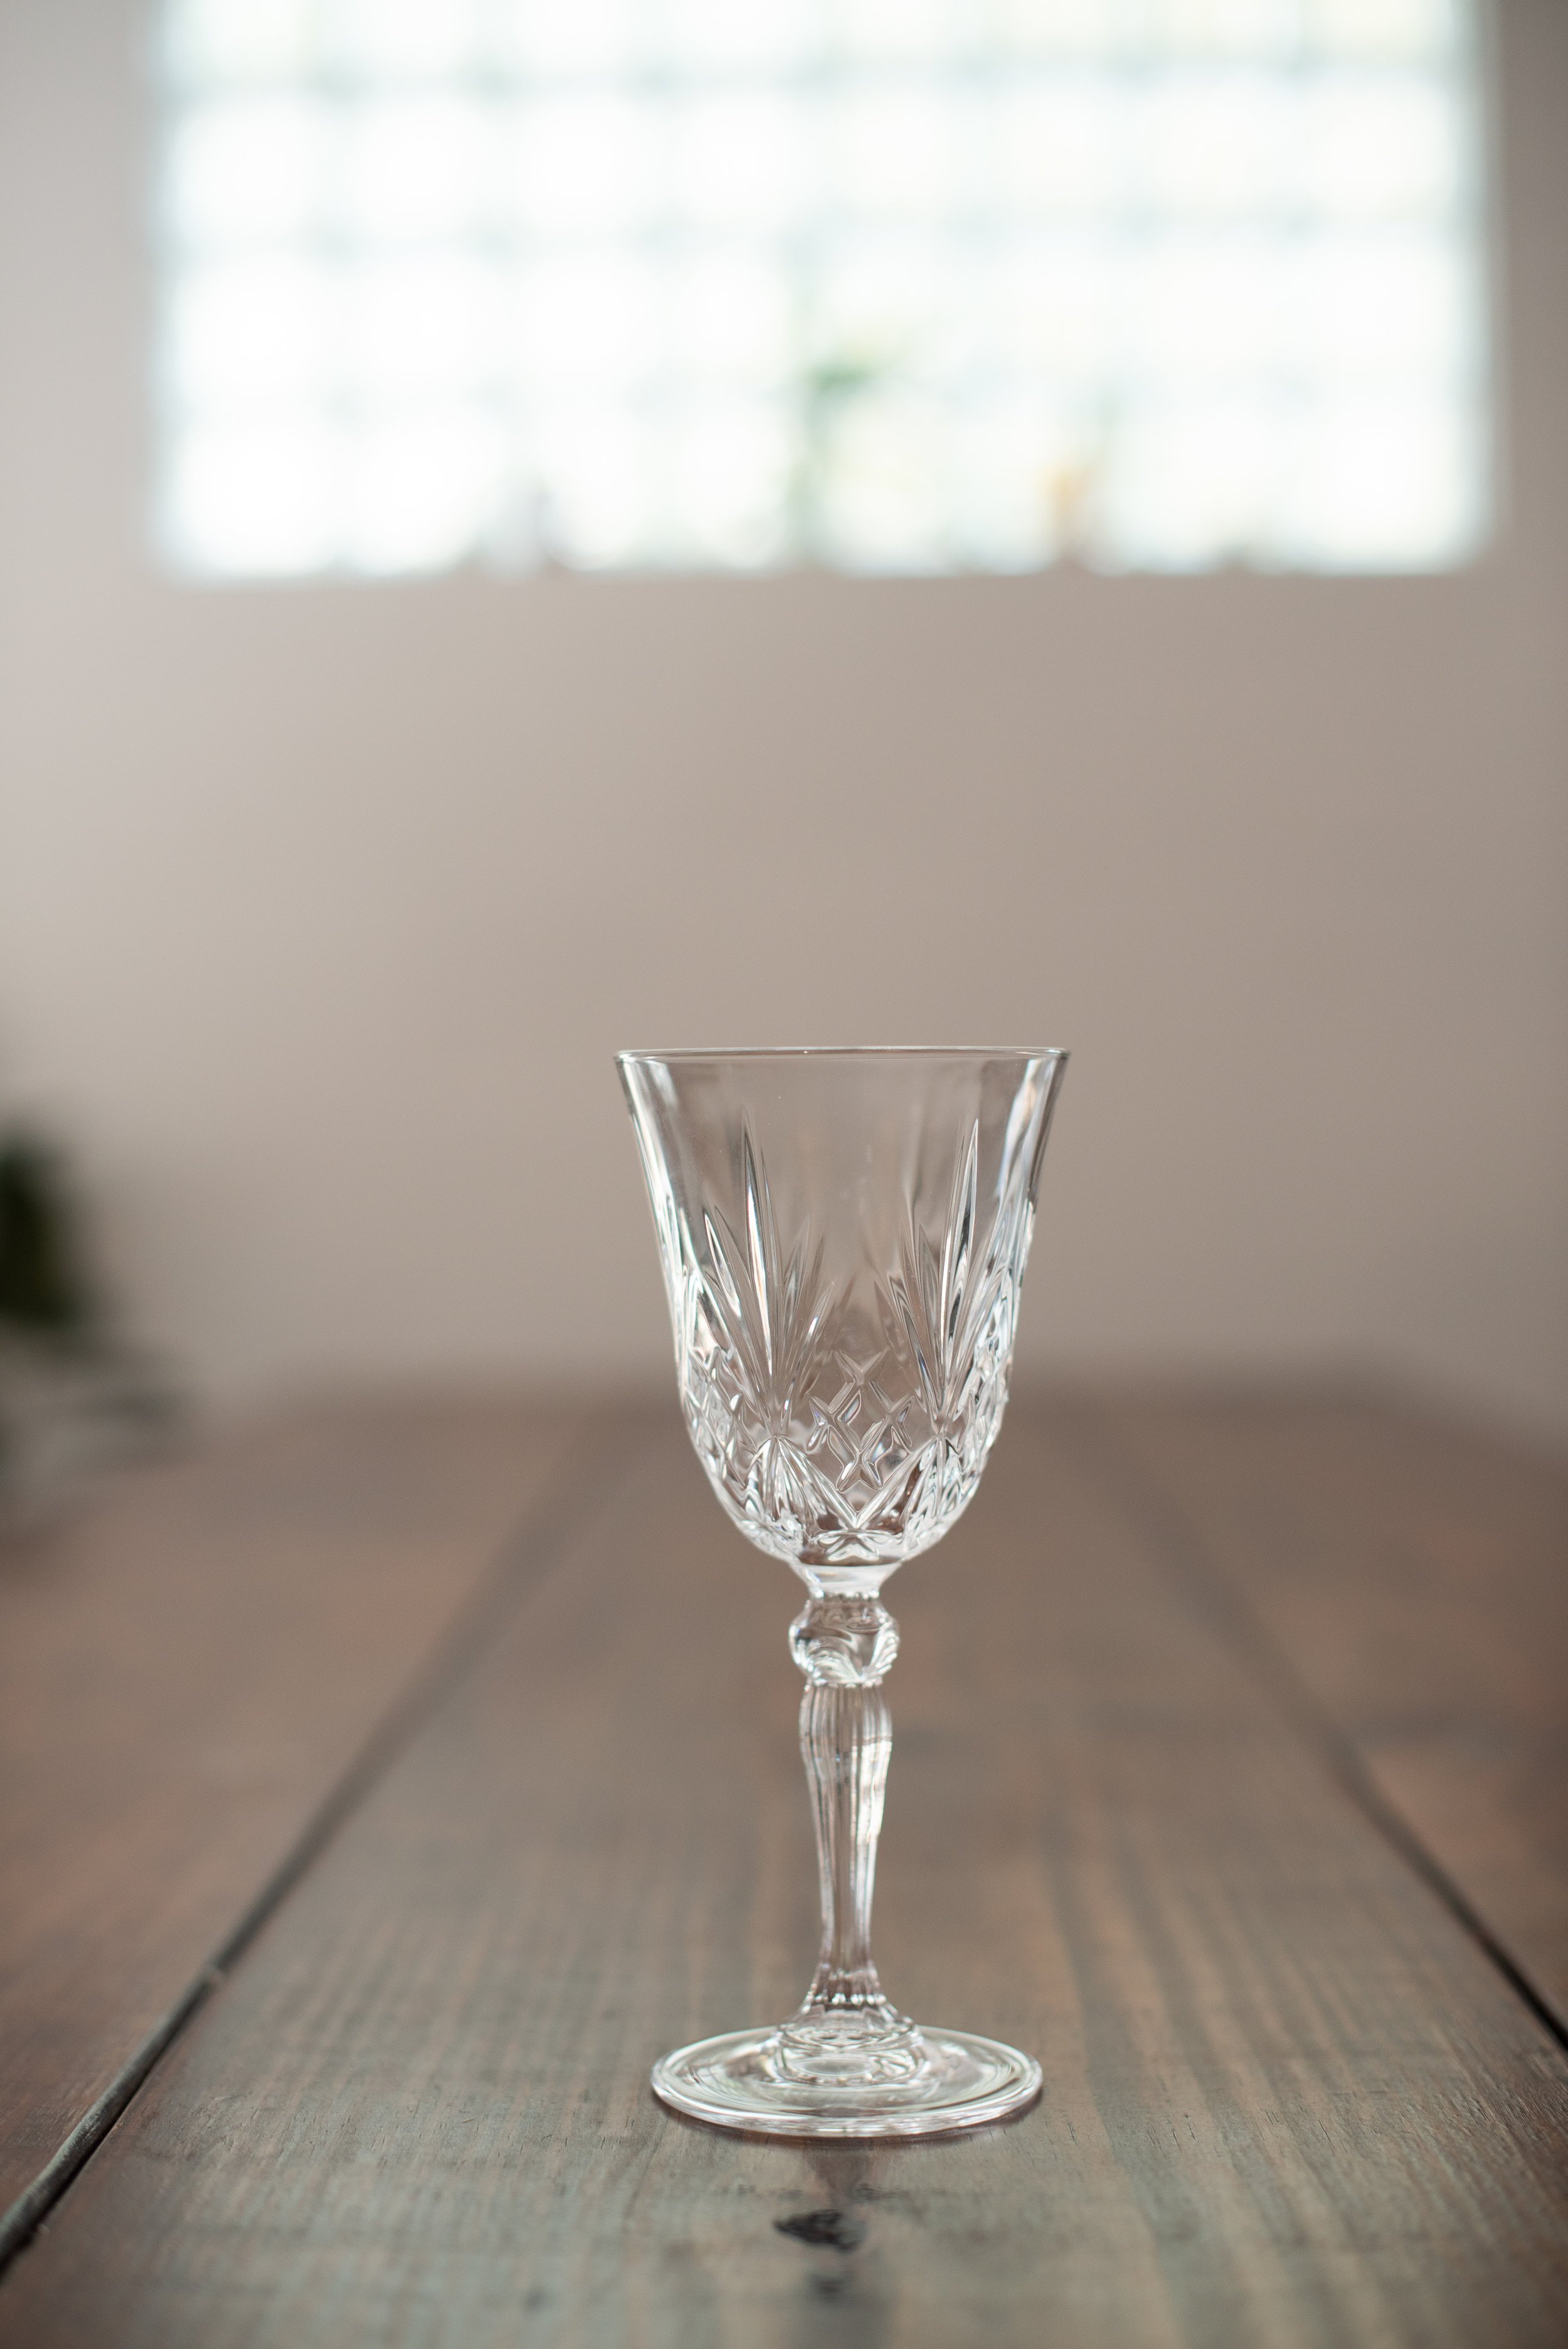 Crystal Wine Glass   Size: 9 oz  Price: $1.50  Quantity available: 20